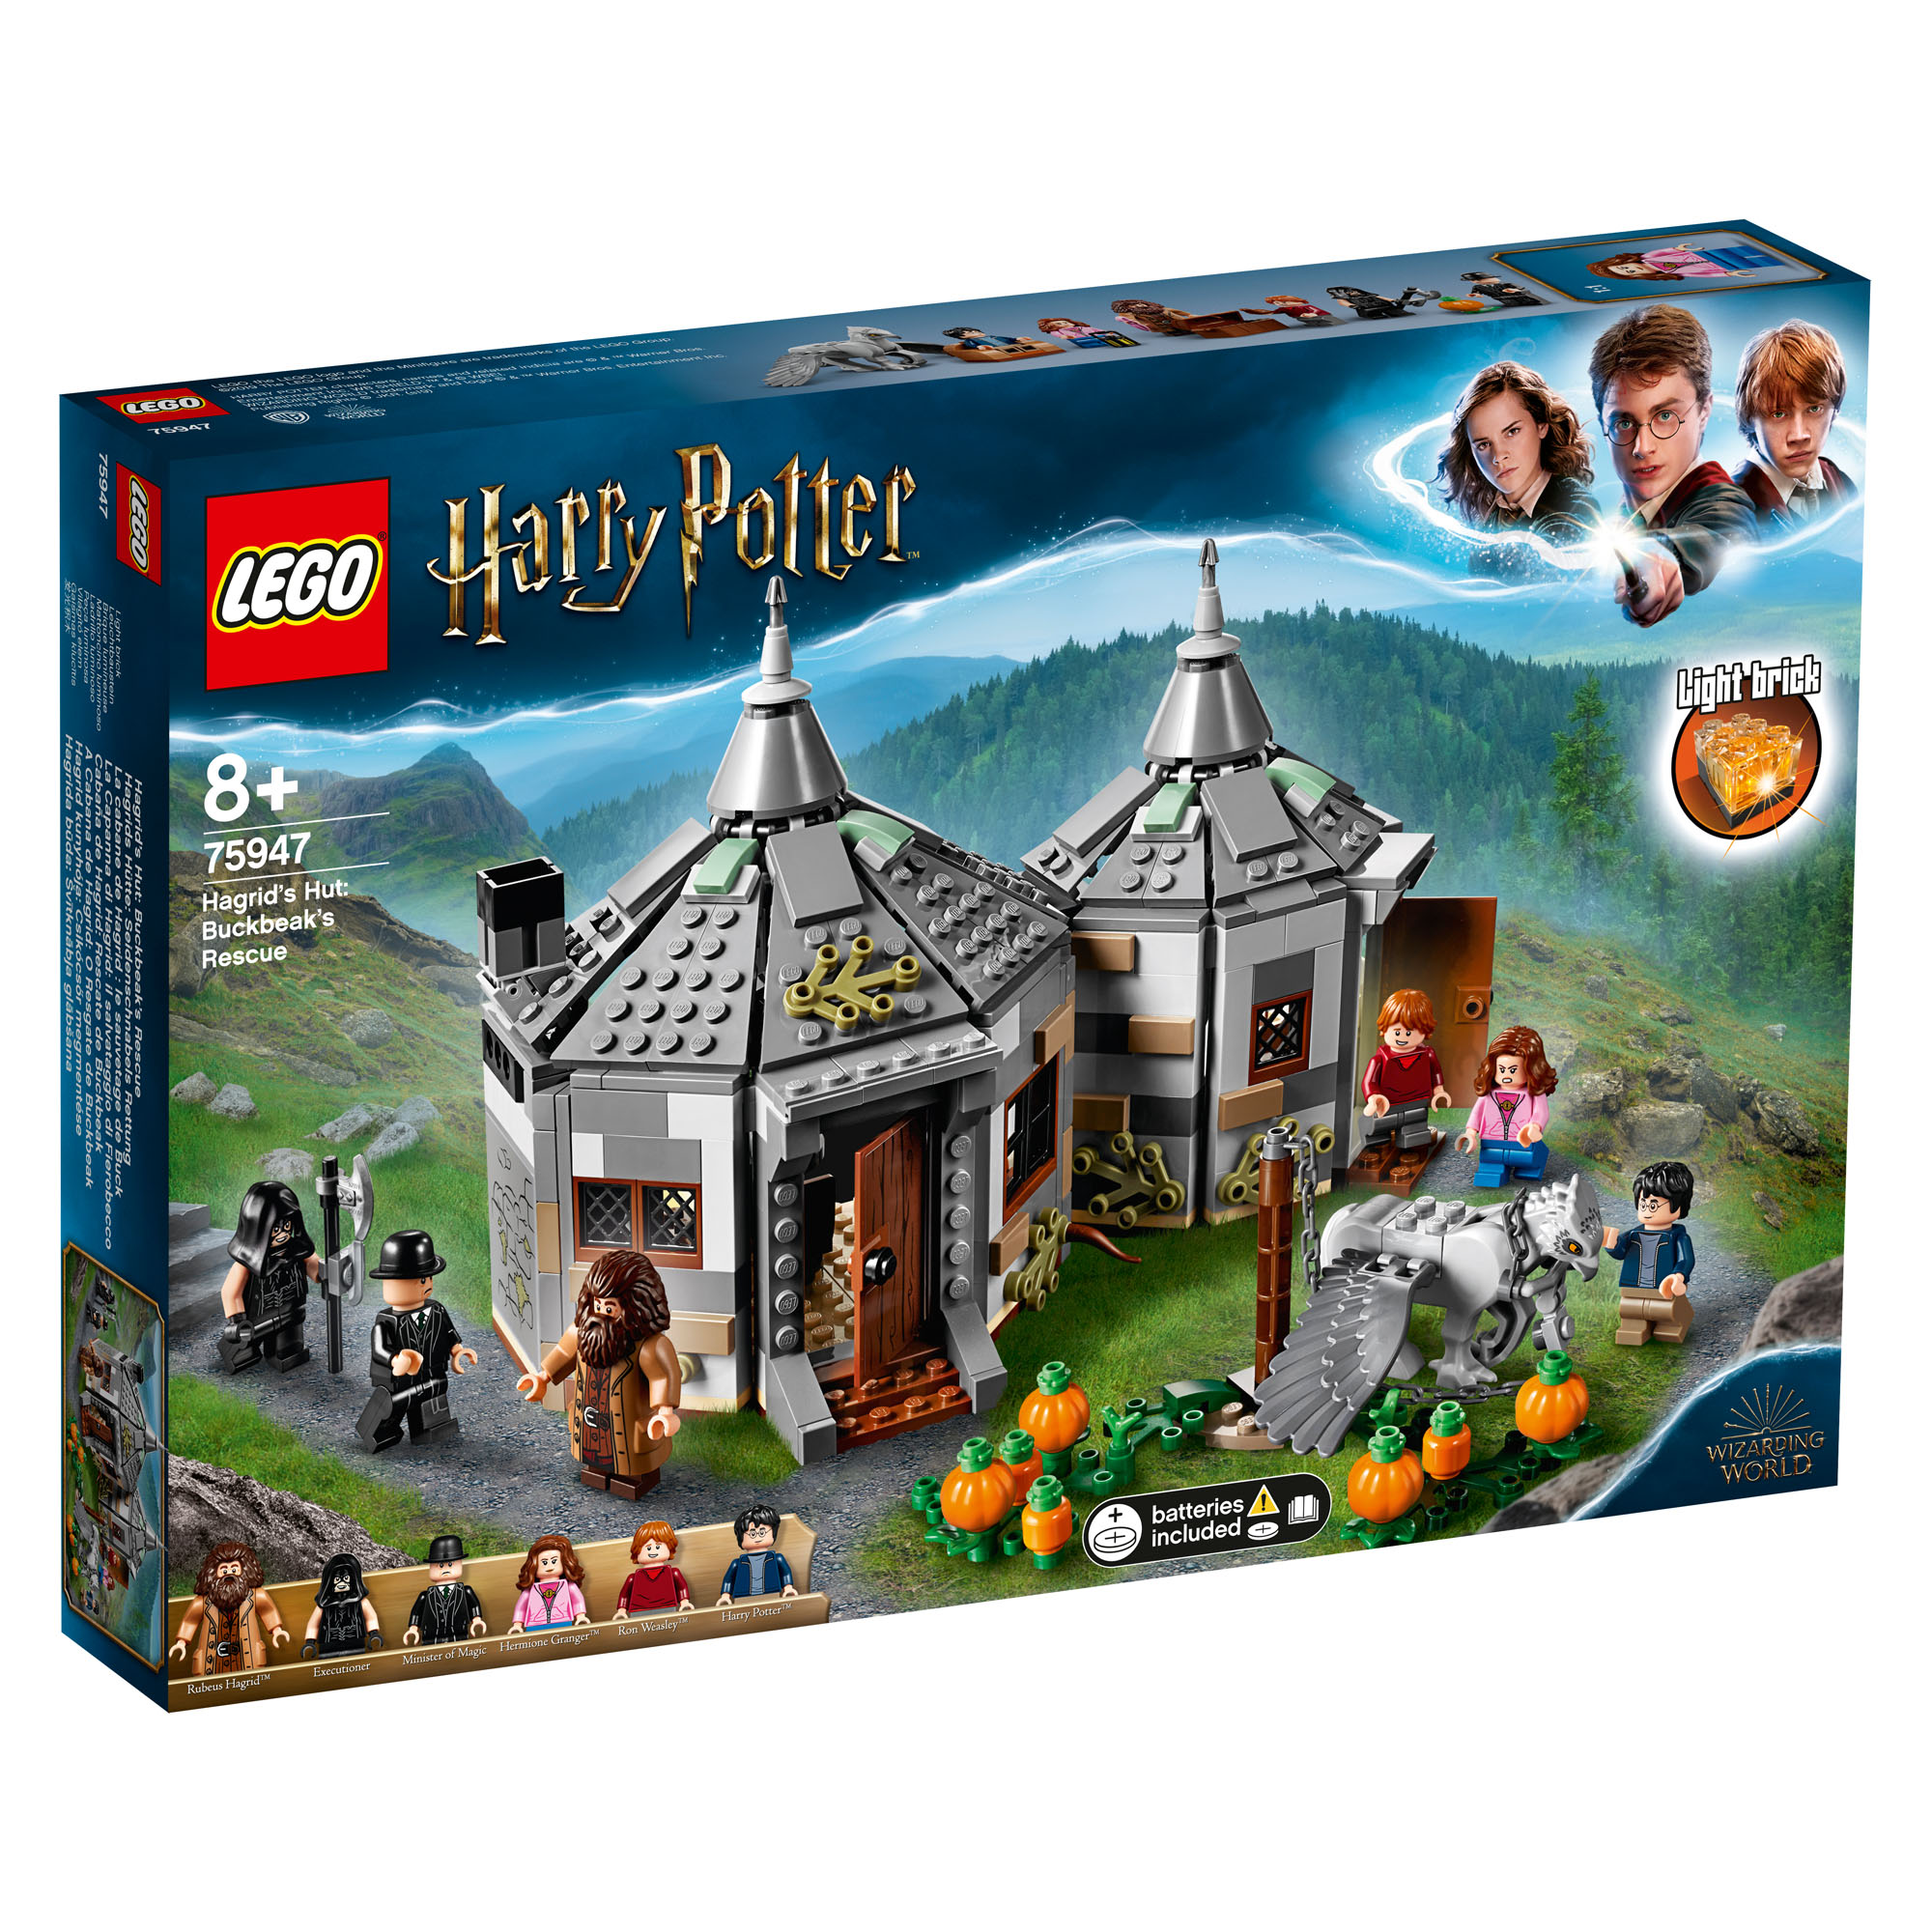 Details About 75947 Lego Harry Potter Hagrid S Hut Buckbeak S Rescue With Hippogriff 496pcs